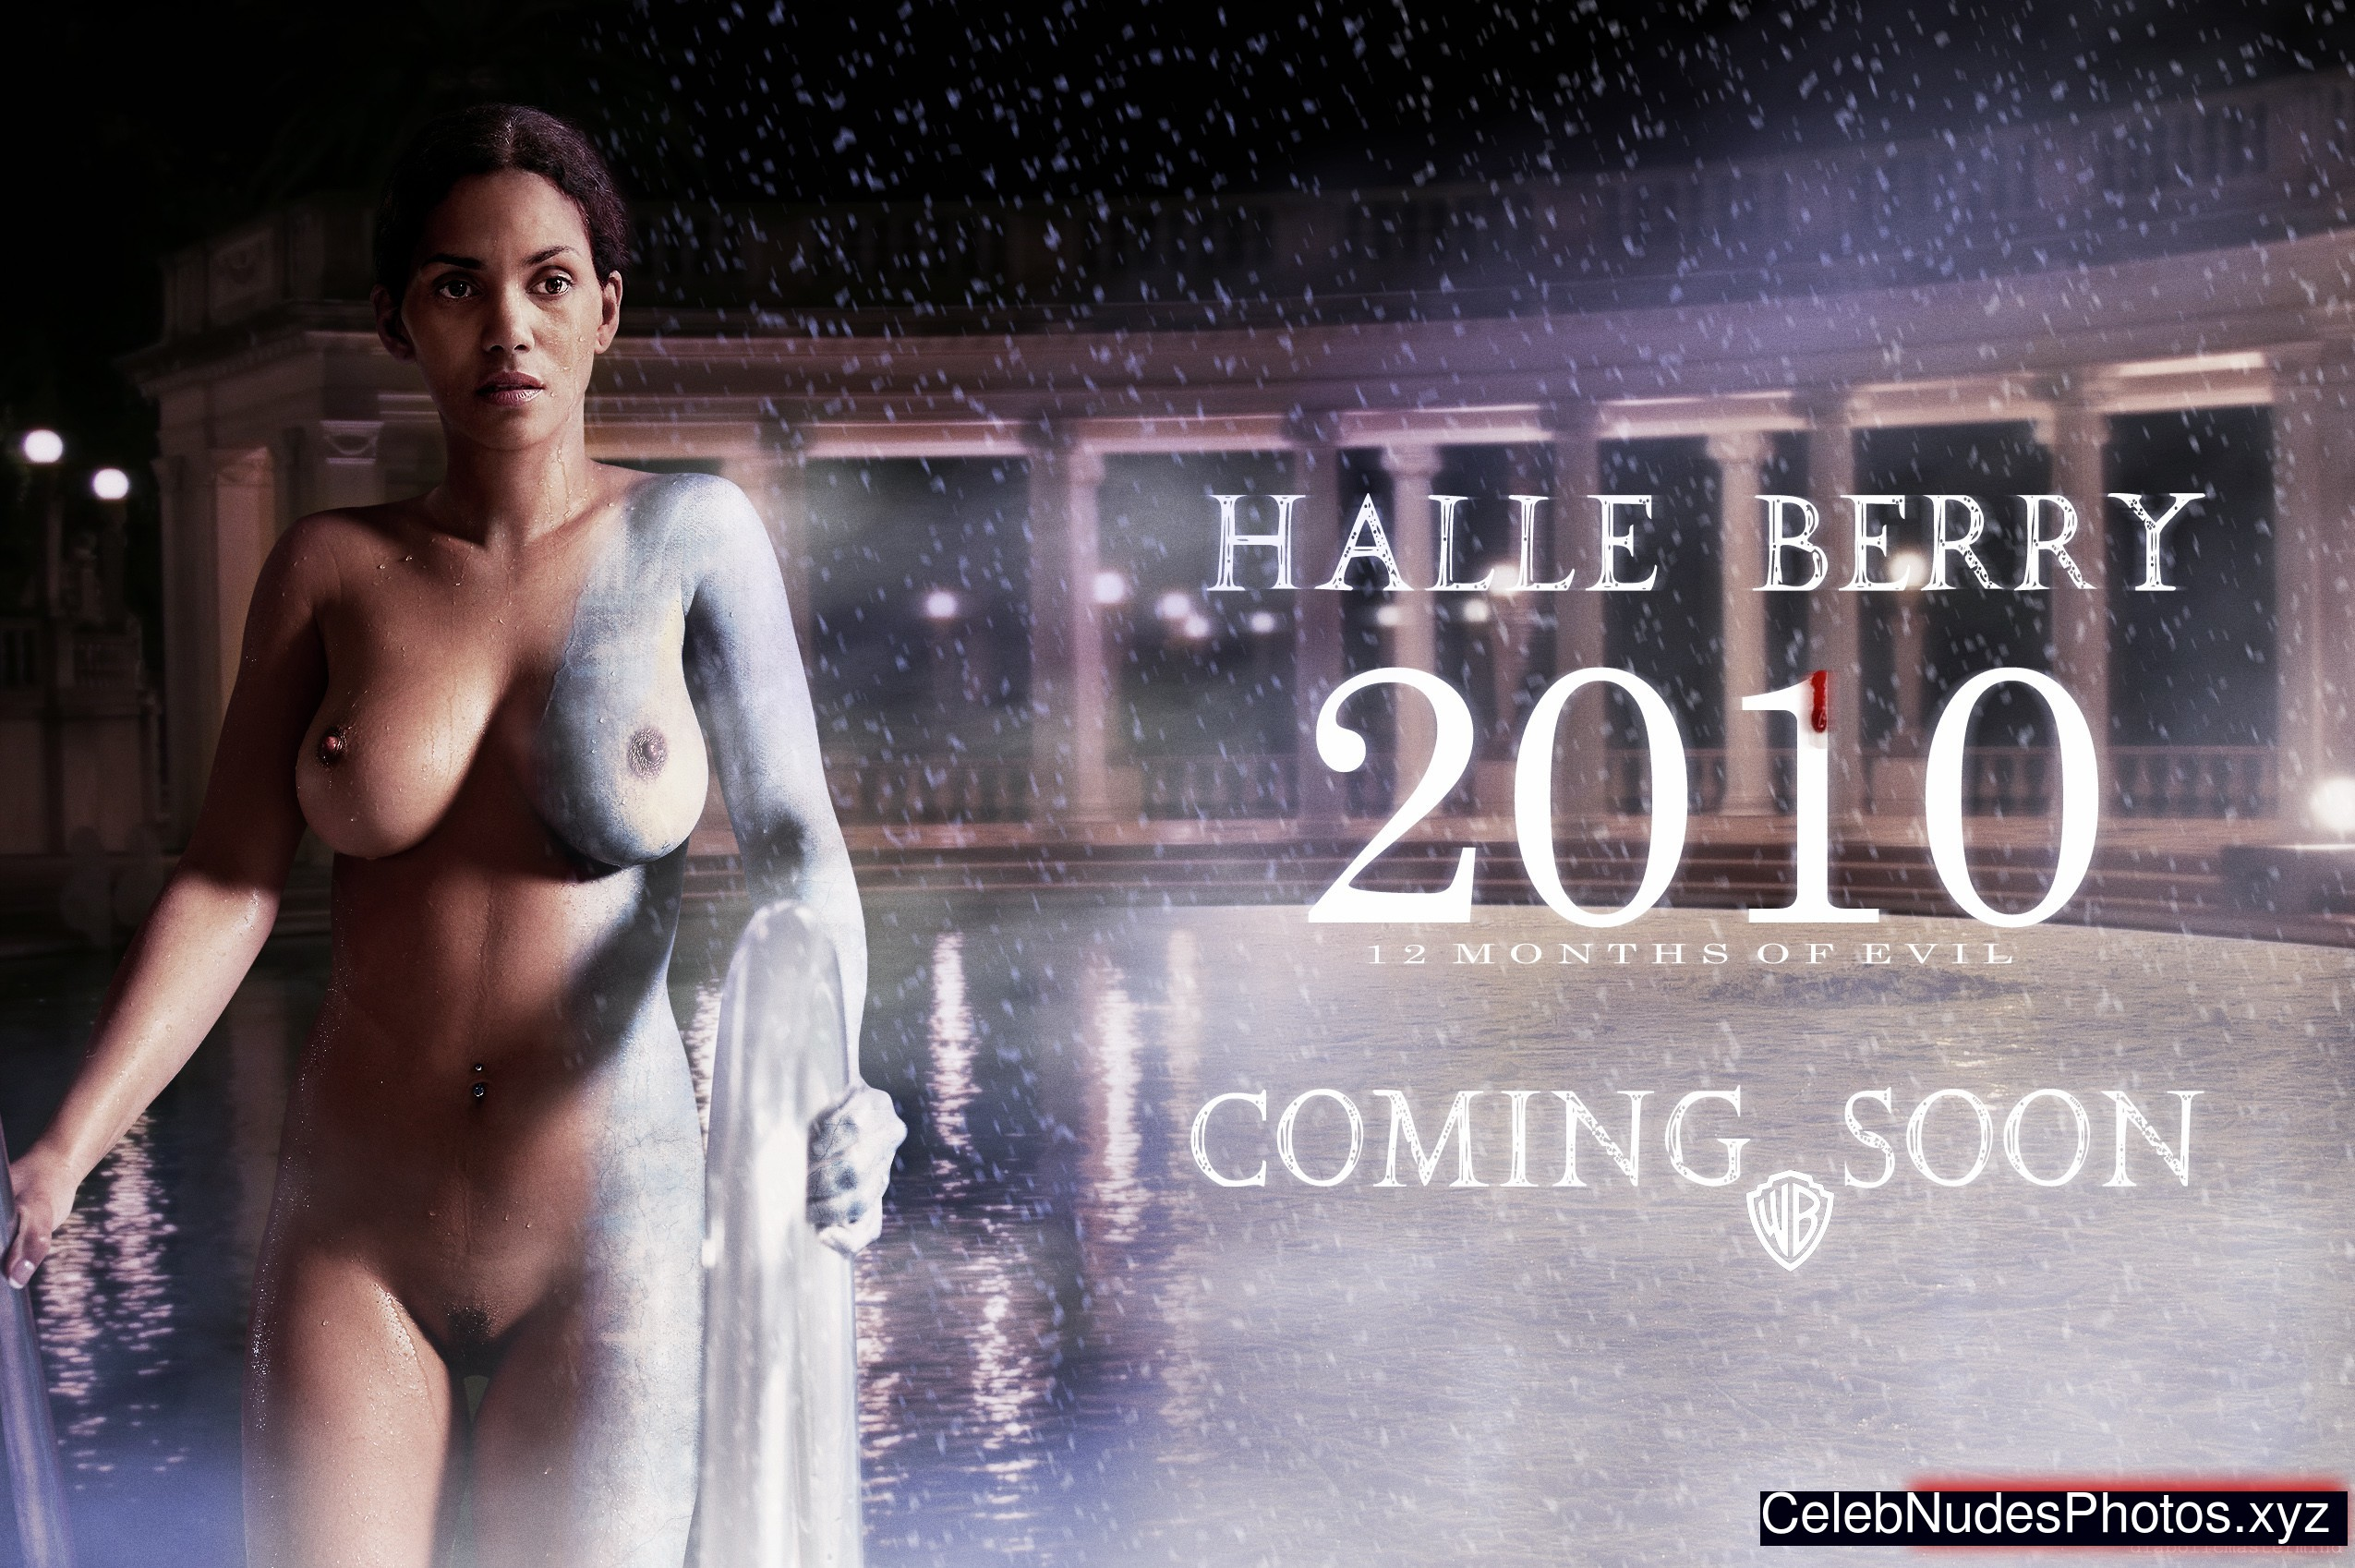 Halle Berry Celebrity Nude Pic sexy 19